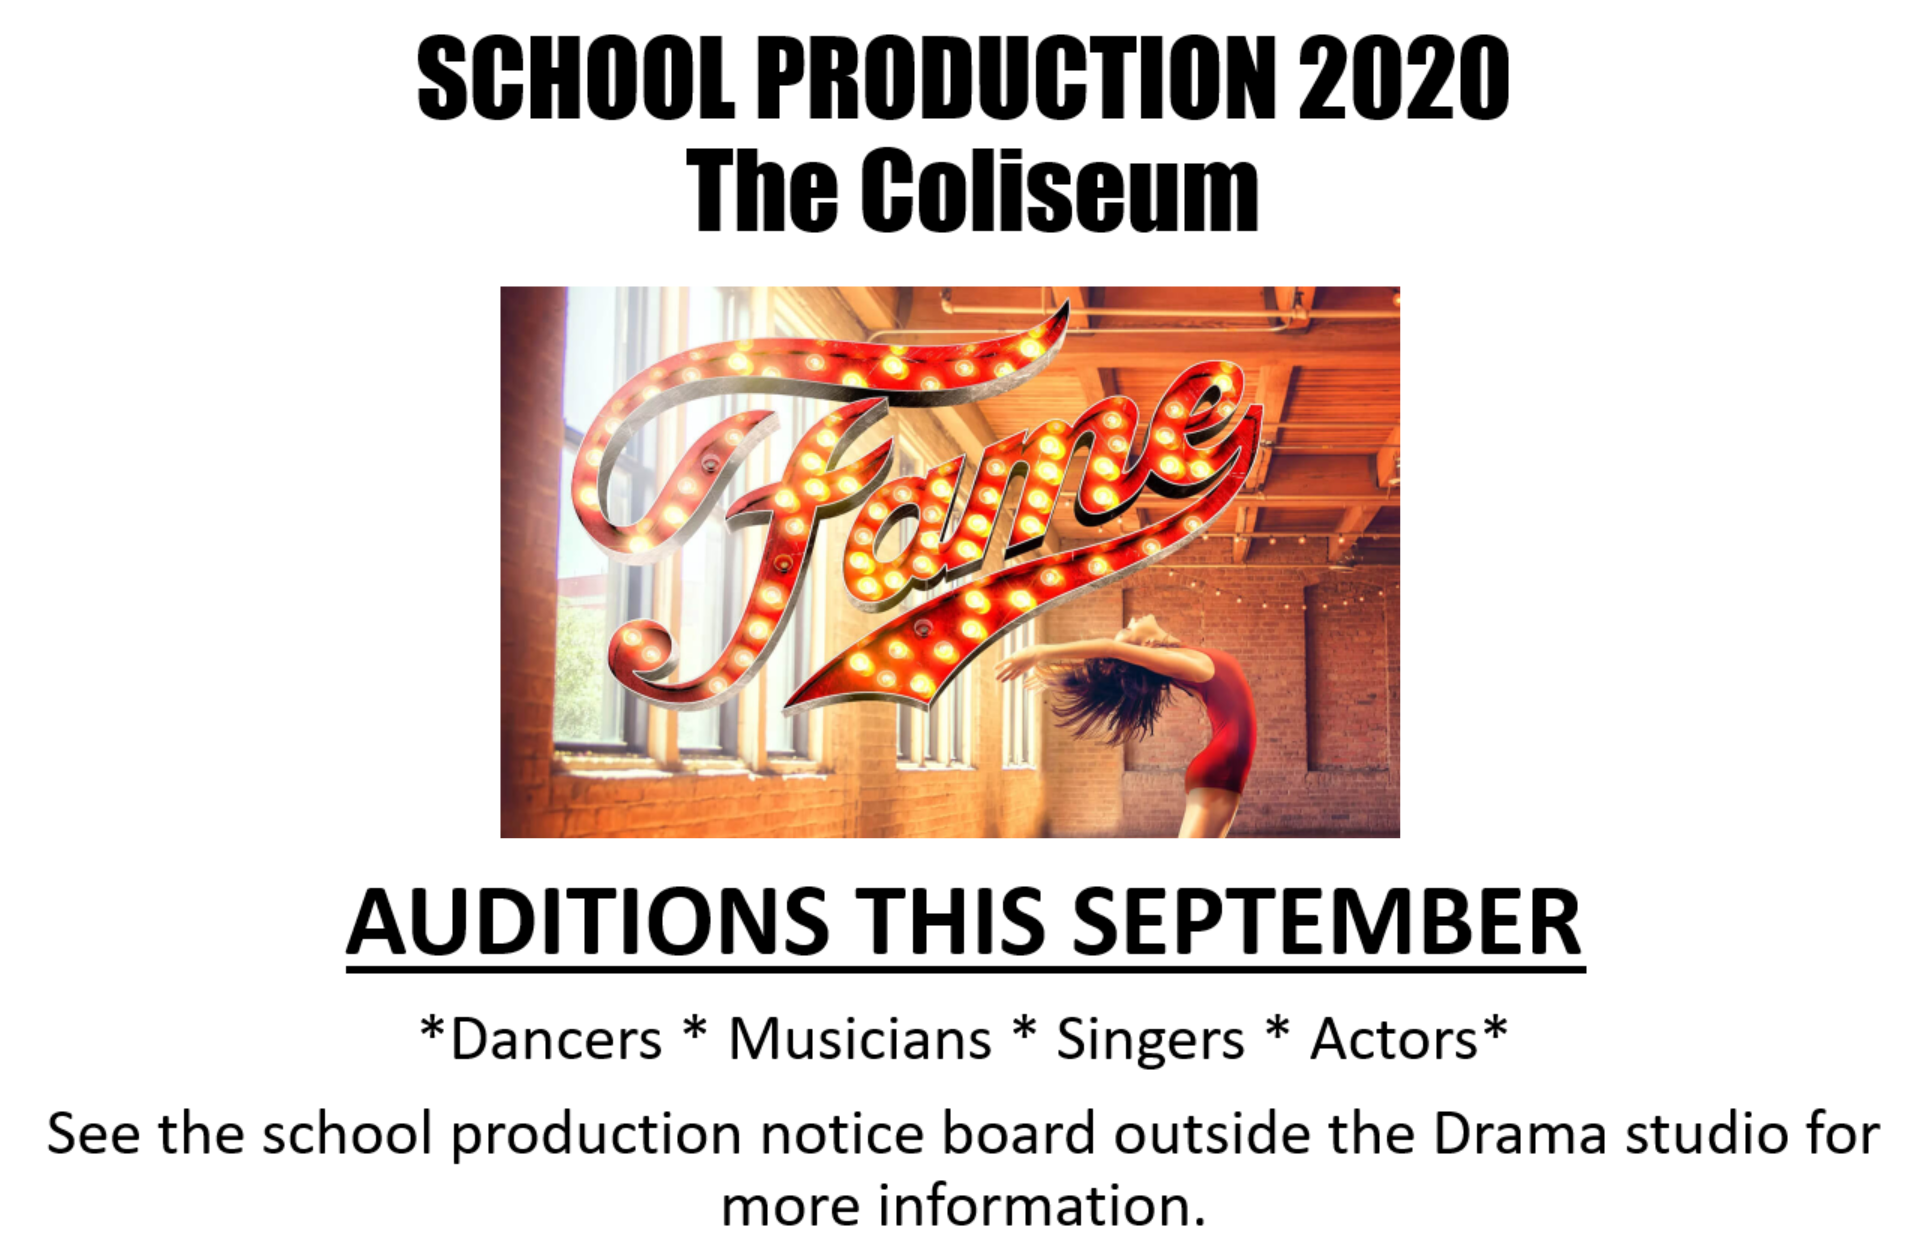 Very excited to announce our 6th school production! We will be bringing Fame to Aberdare in 2020! See the CA29 notice board for show info over the next two days. Auditions will be held in September!